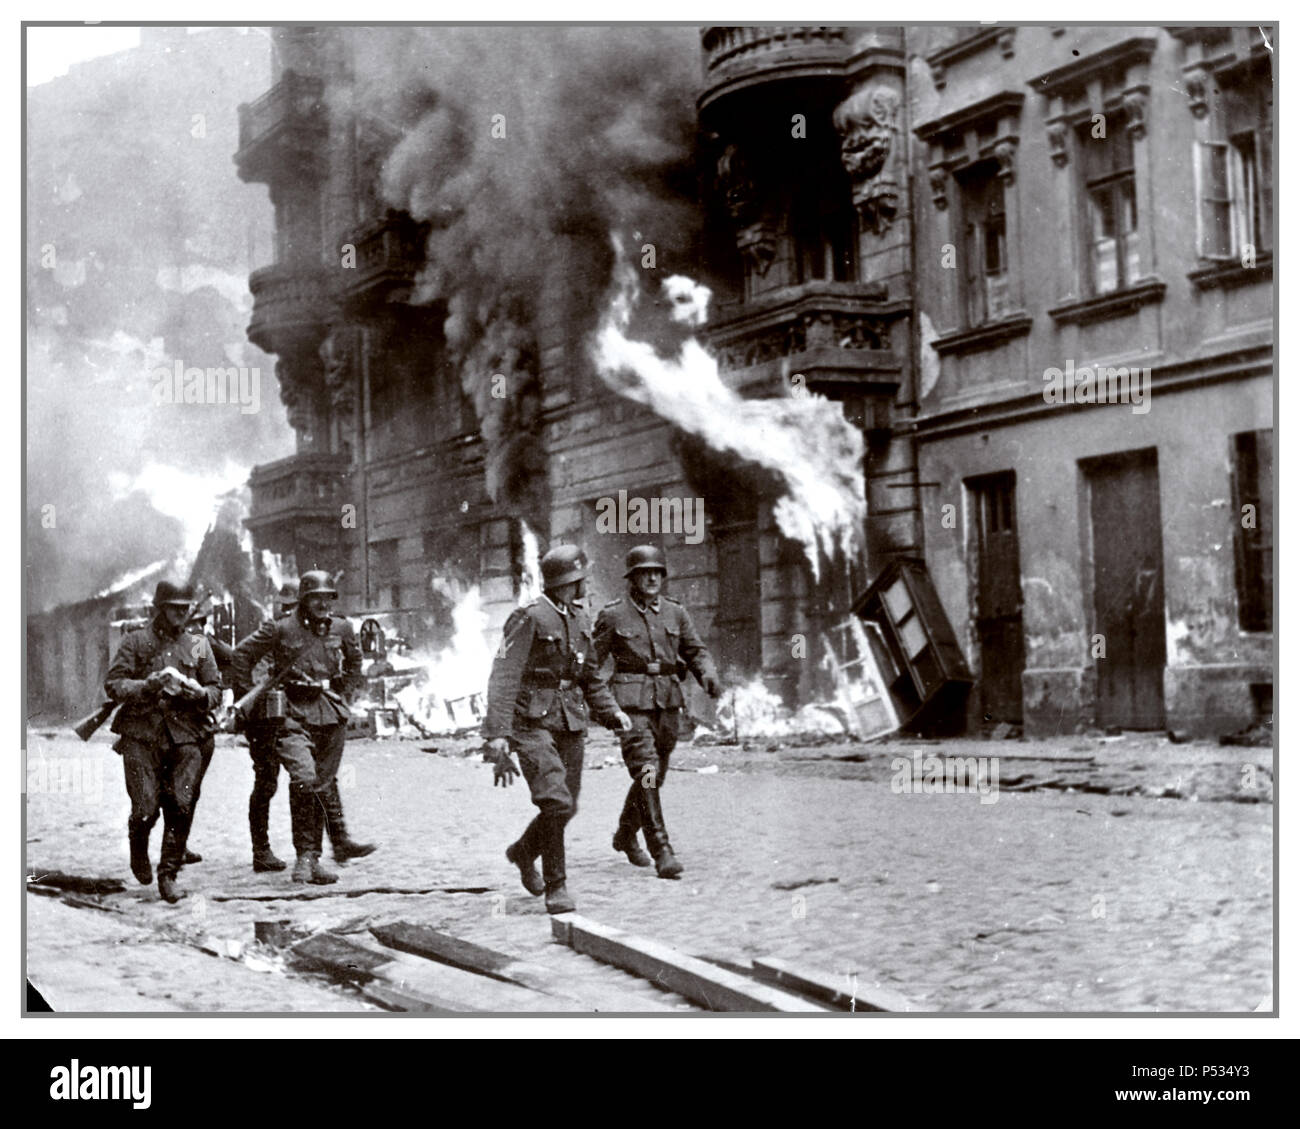 The liquidation of Warsaw Ghetto in May 1943 by Nazi Waffen SS troops. 'The Jewish Quarter of Warsaw is No More!' ..wrote Jürgen Stroop in the STROOP REPORT made for Heinrich Himmler about the brutal inhuman liquidation of Warsaw Ghetto in May 1943 This was a war crime used as evidence by United States Counsel for the Prosecution of Axis Criminality; Nuremberg Germany - Stock Image